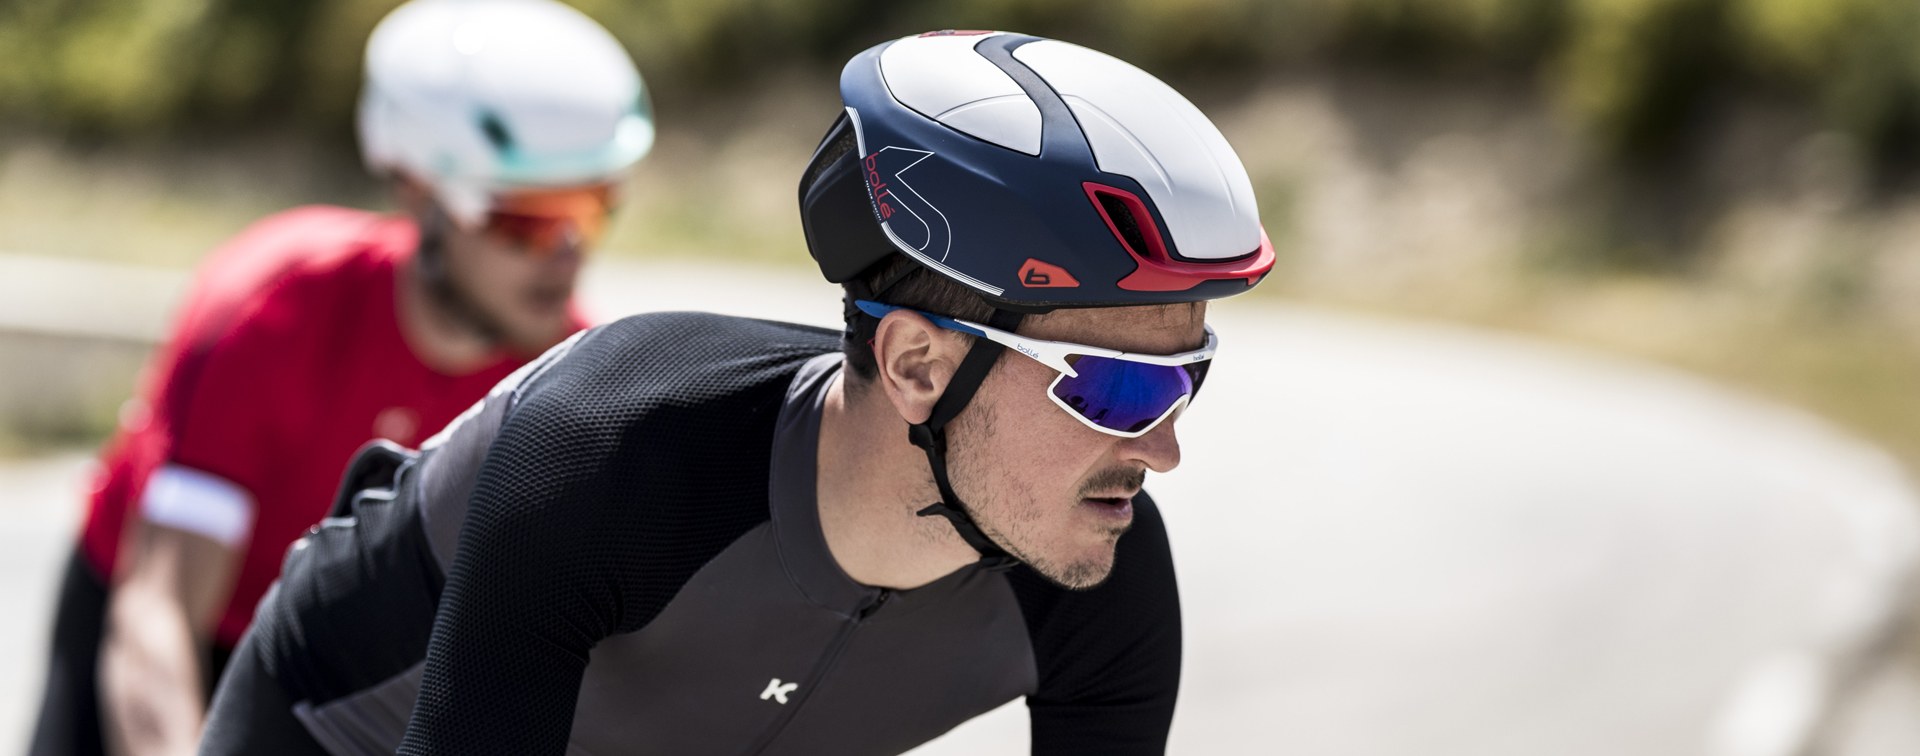 fbe1c6e84af A Guide to the Best Cycling Sunglasses - I Love Bicycling